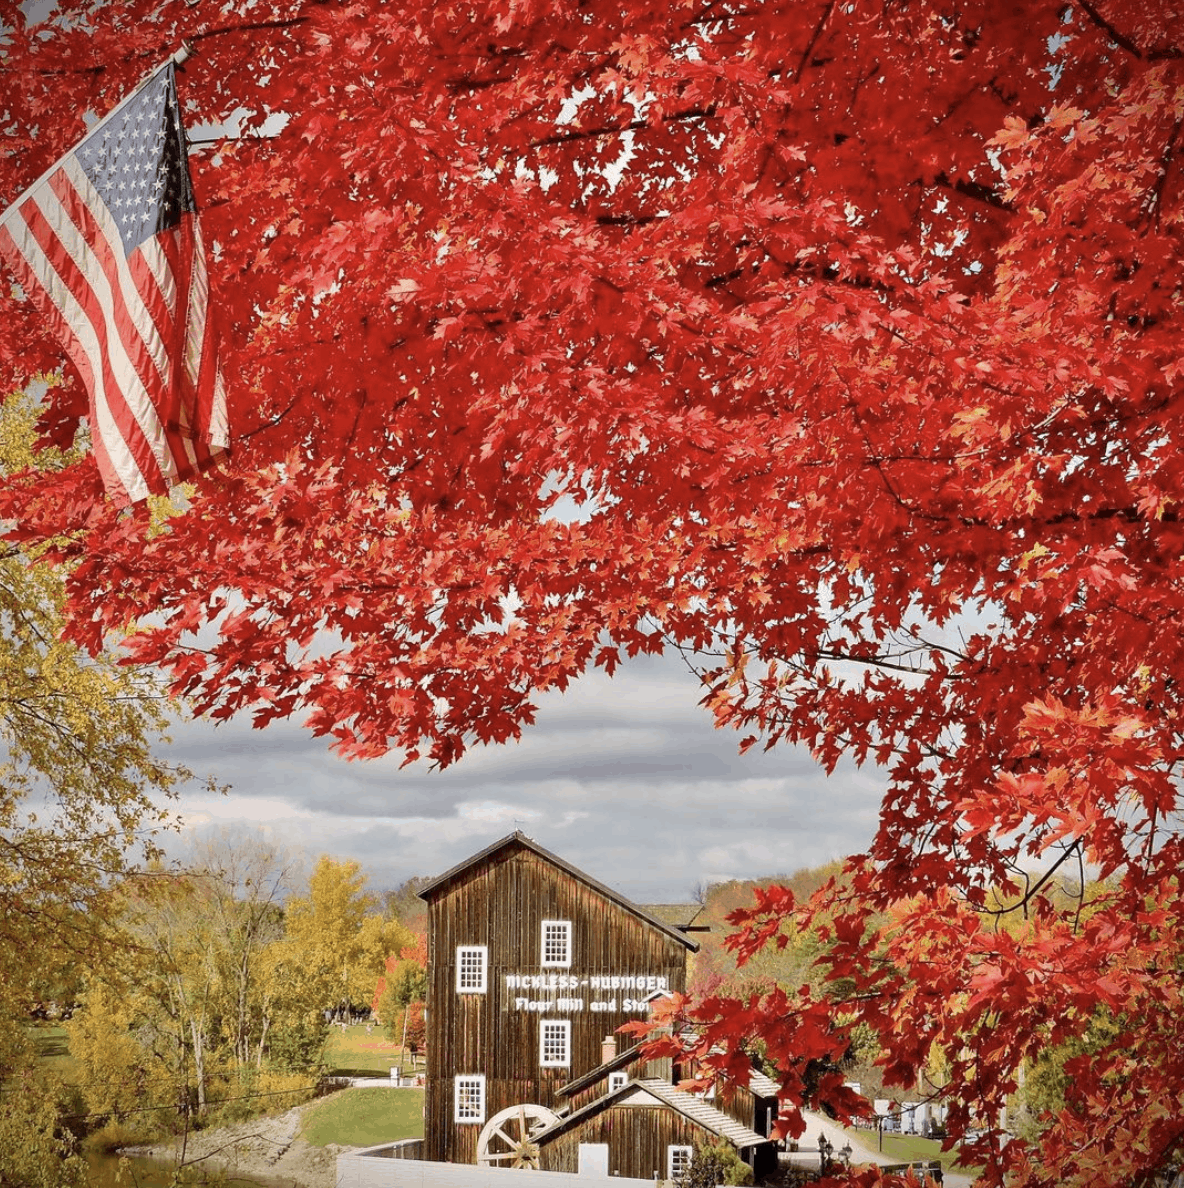 Fall Frankenmuth 14 Best Fall Things to Do in Mid-Michigan | Lansing, Frankenmuth, Flint, Midland, and More